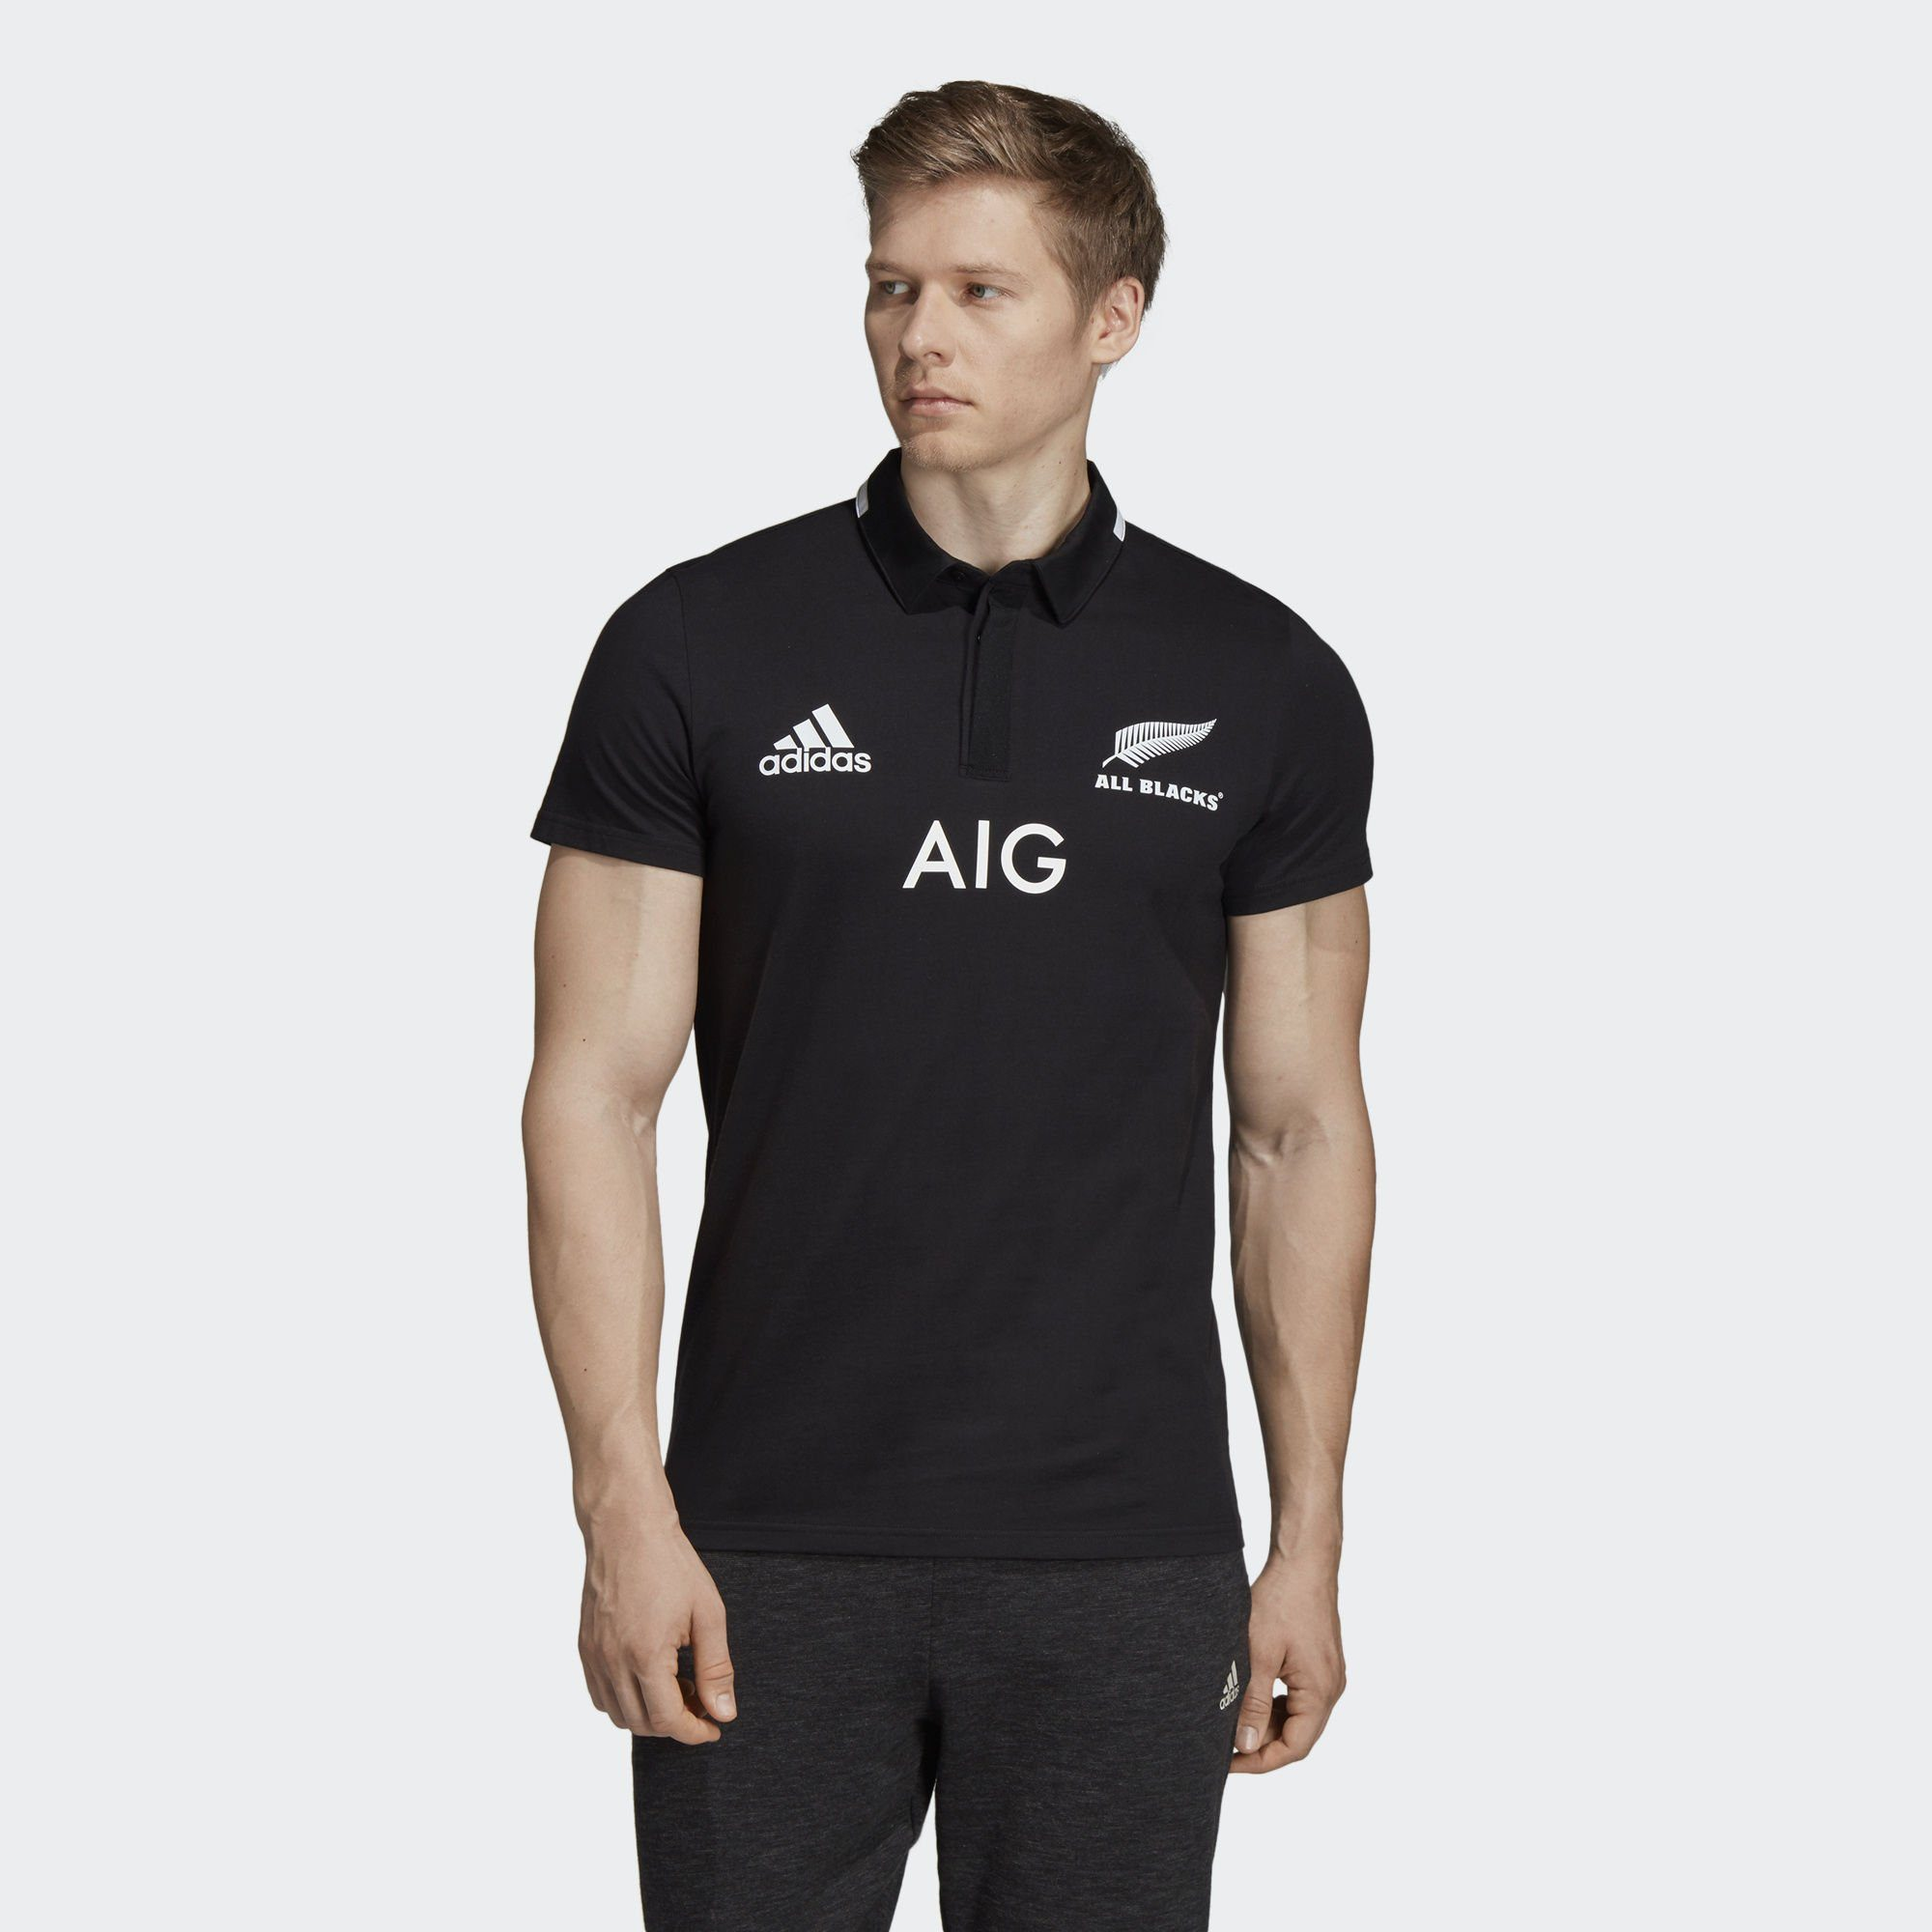 »all Blacks T shirt Performance Supporters Online Trikot« Kaufen Adidas v6Yf7gby